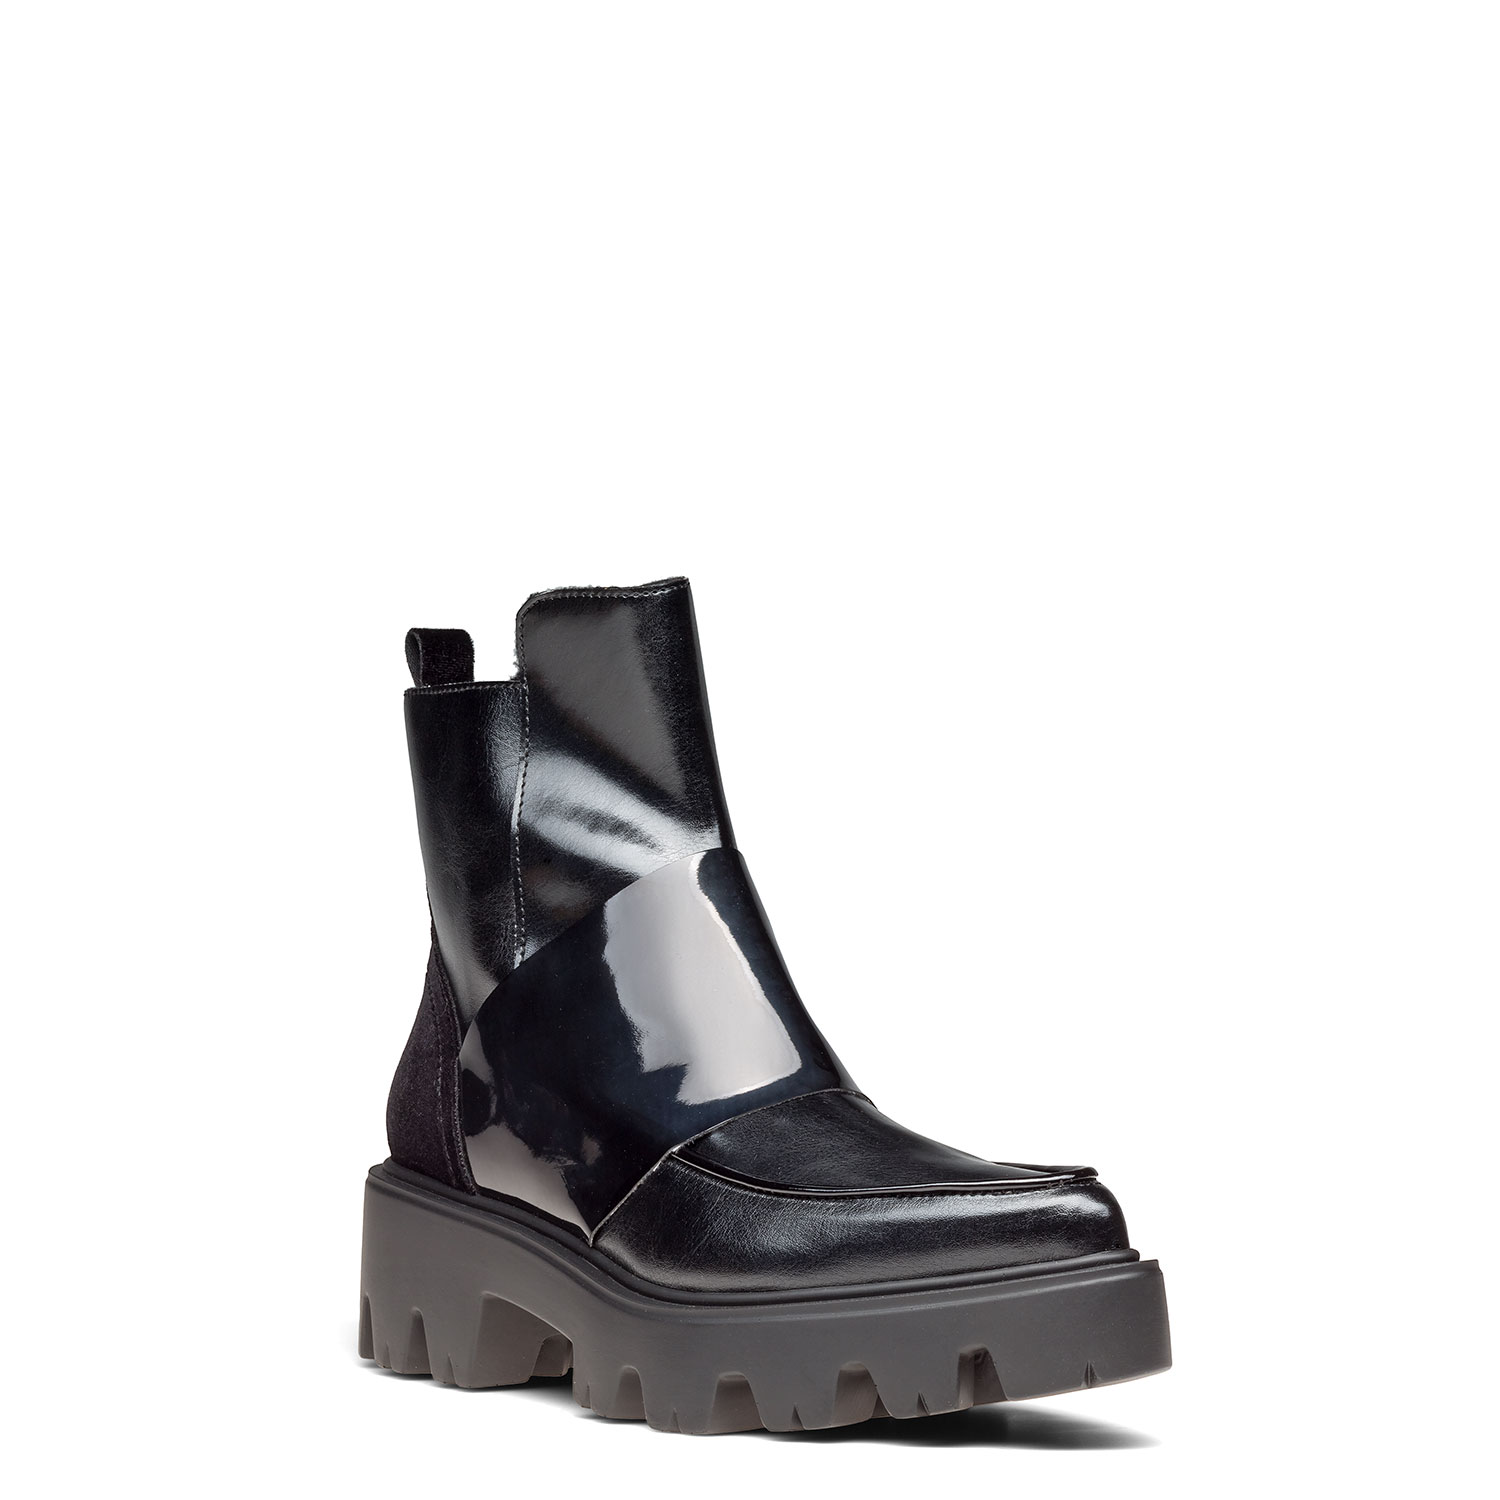 Women's ankle boots CARLO PAZOLINI AS-RES5-1